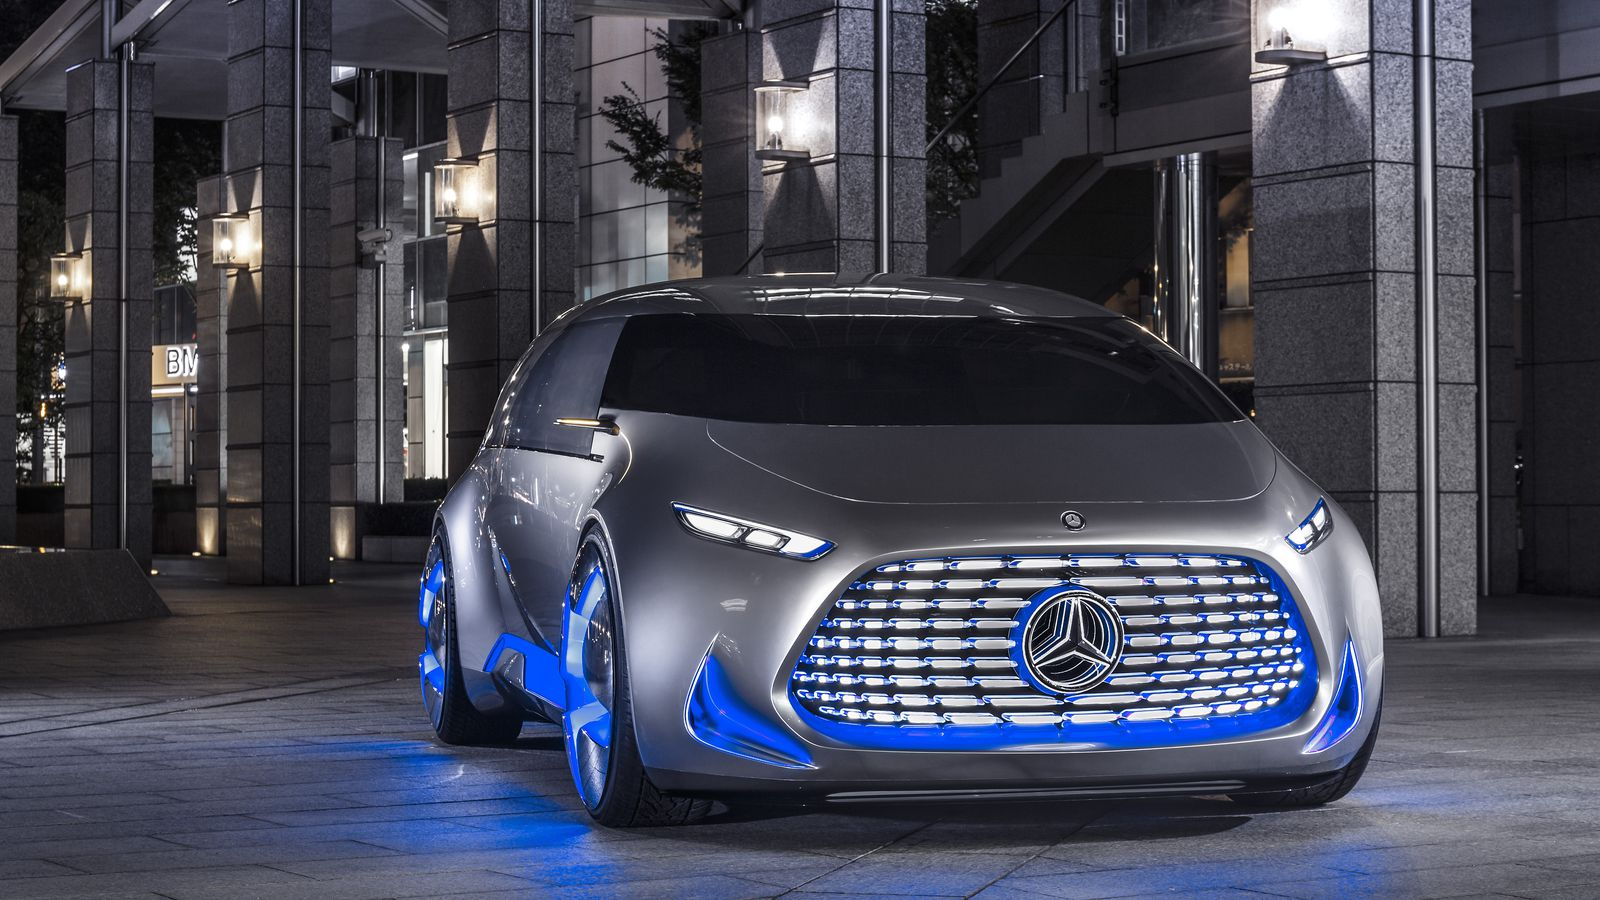 Mercedes-Benz's Vision Tokyo is a self-driving car for the megacity